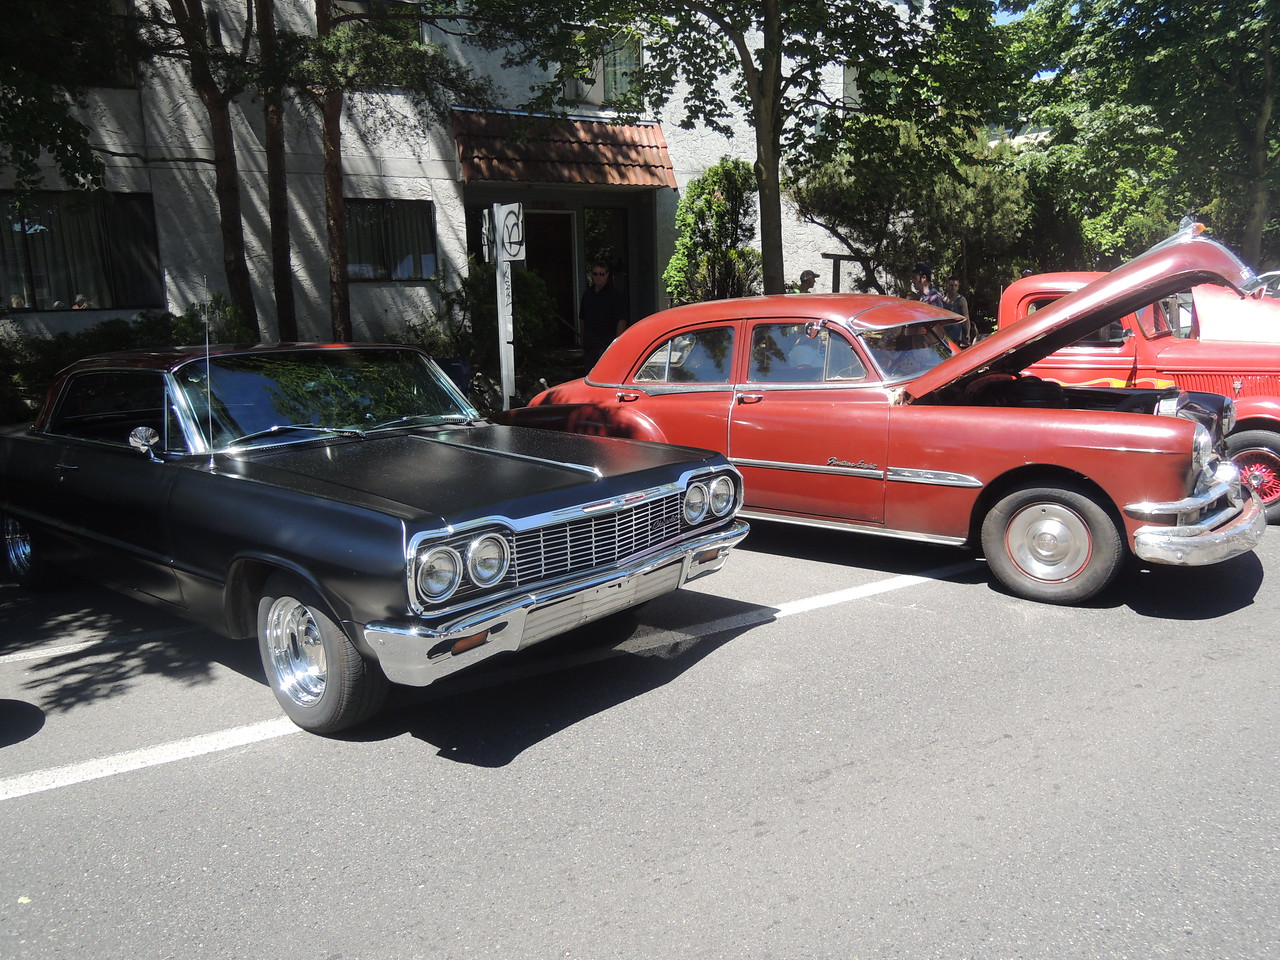 1964 Chevy next to the 1951 Pontiac